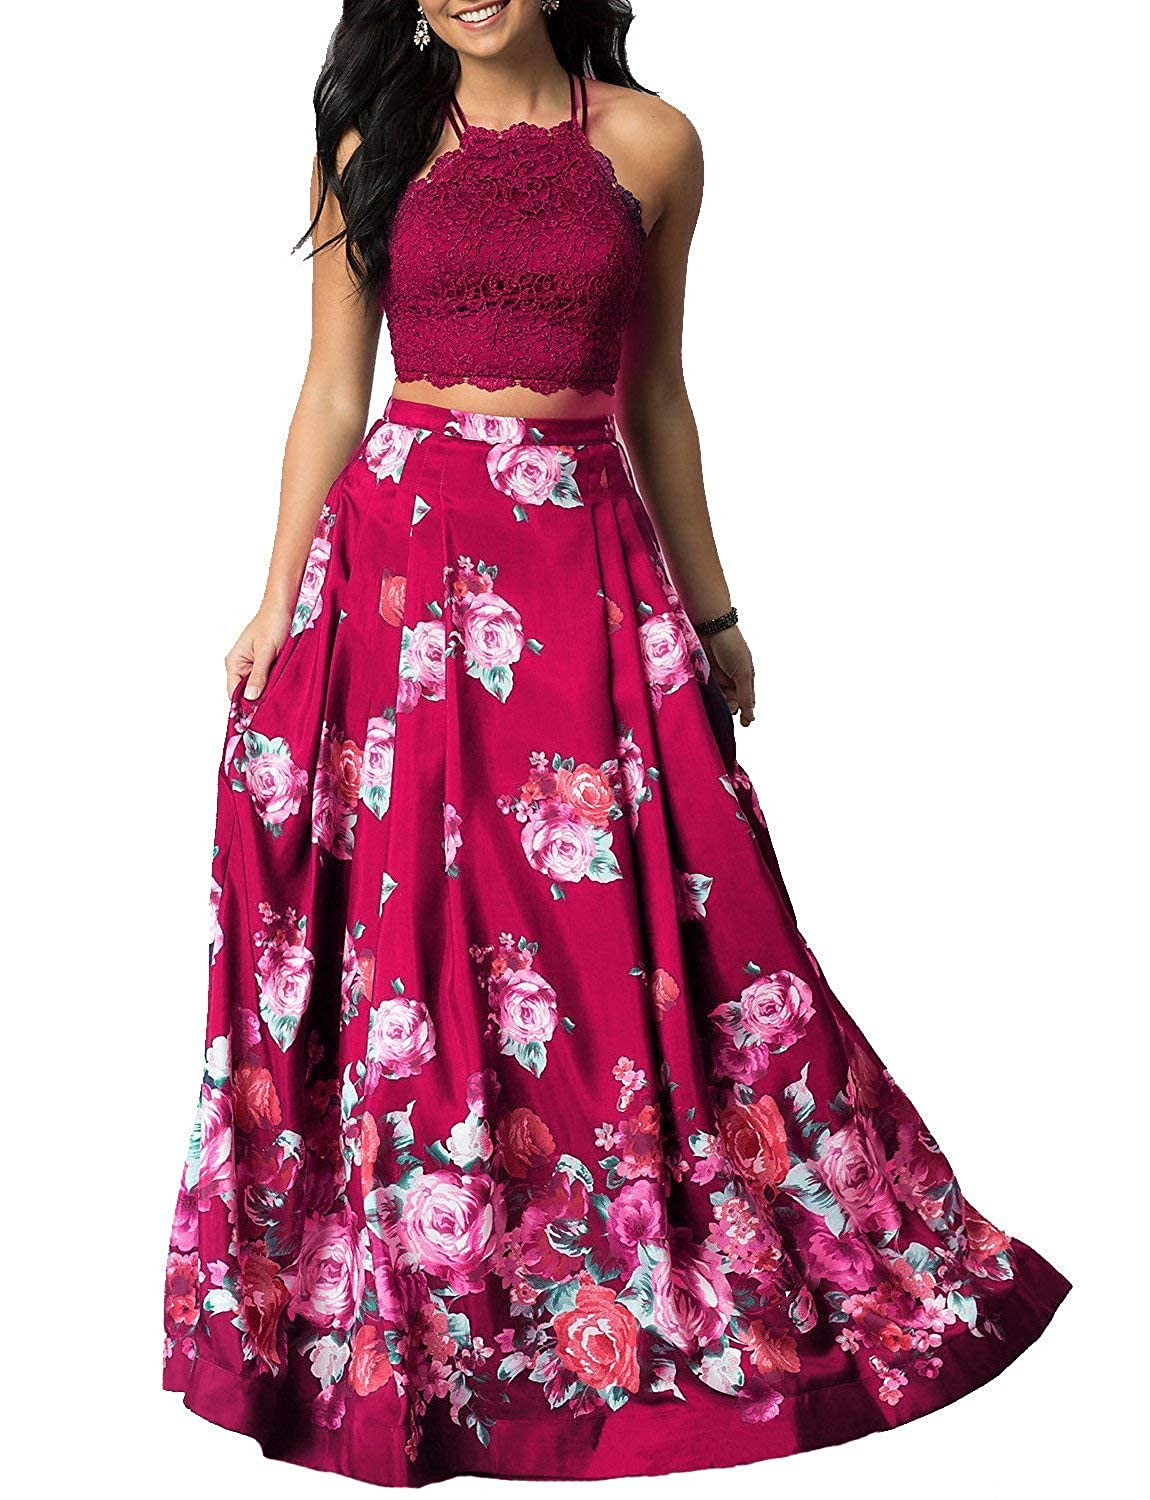 pink Red Sulidi Women's Halter Two Pieces Floral Printed Prom Dresses Long Satin Pleated Evening Formal Gown C095